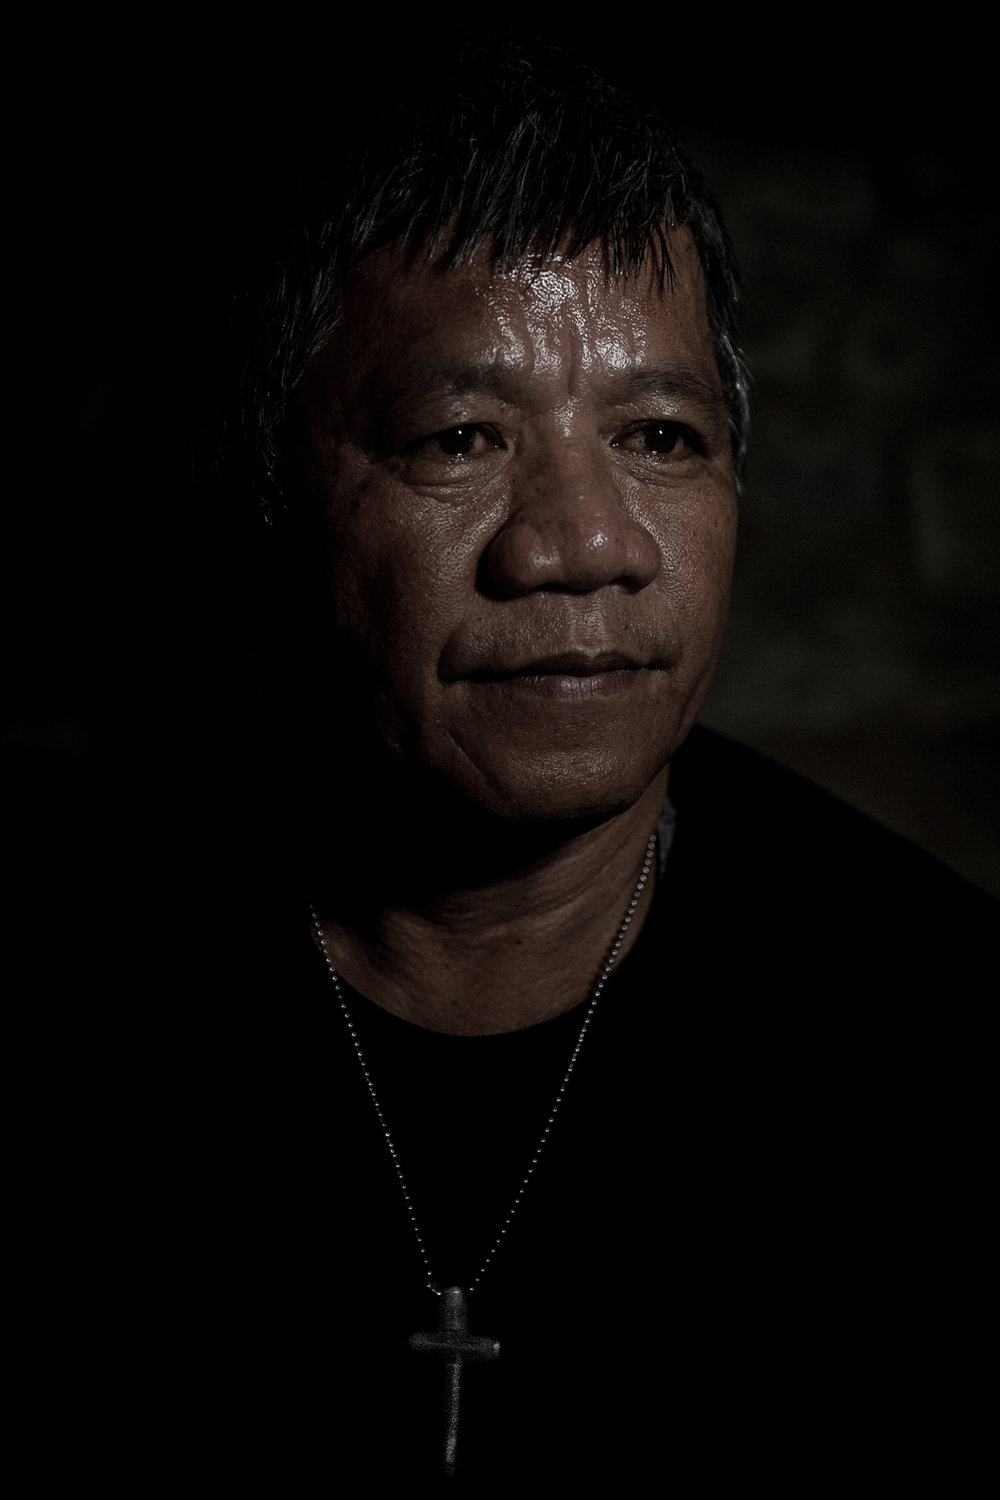 Edgar Matobato , self-confessed hitman and member of the Davao Death Squad